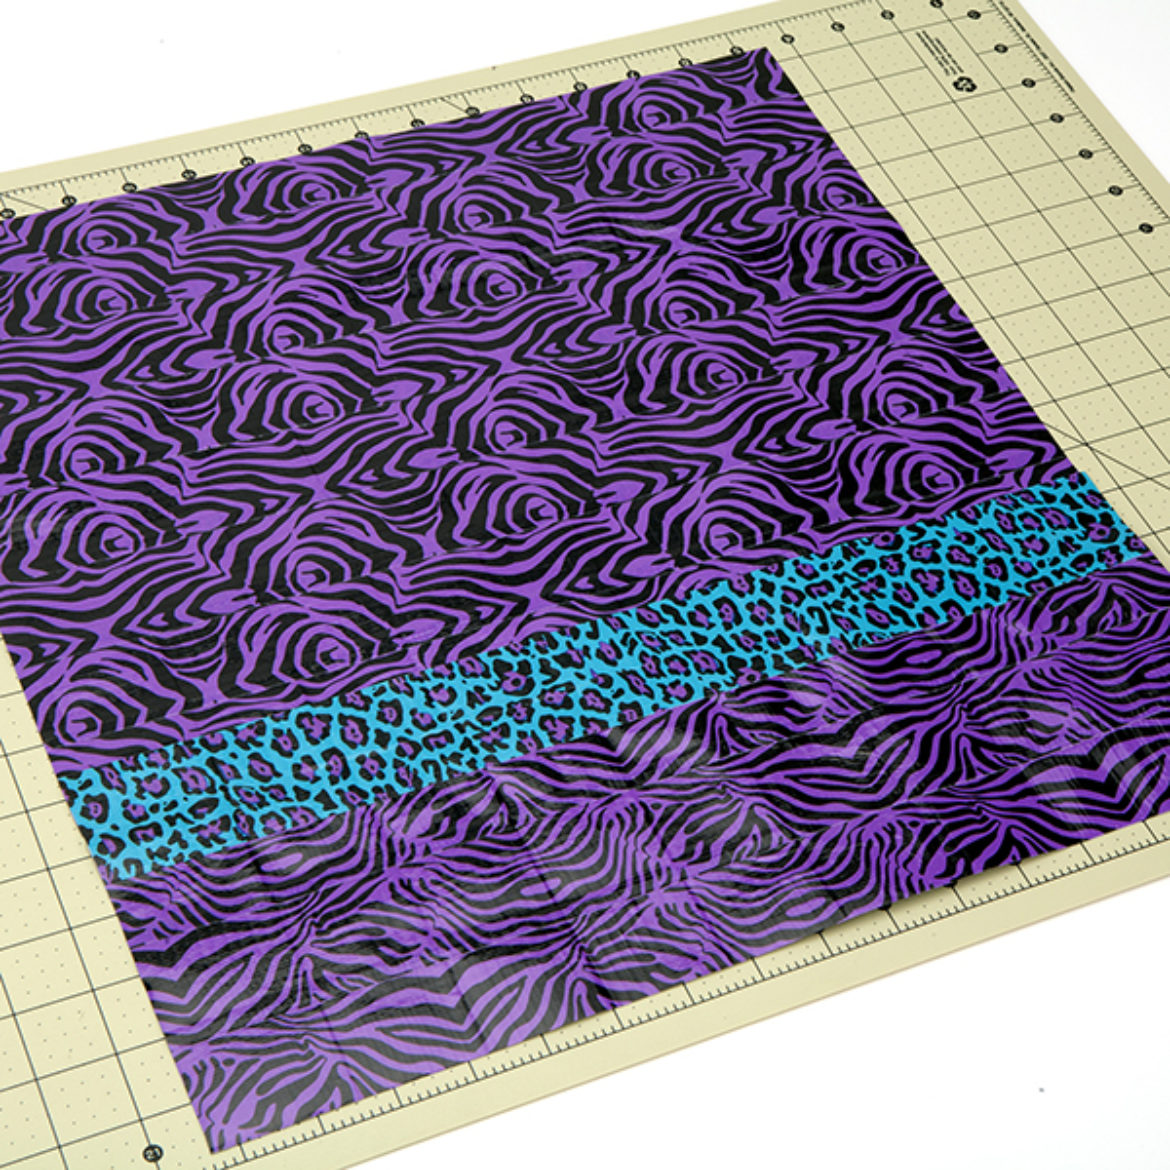 piece from step 3 taped to the bottom of the second piece from step 1